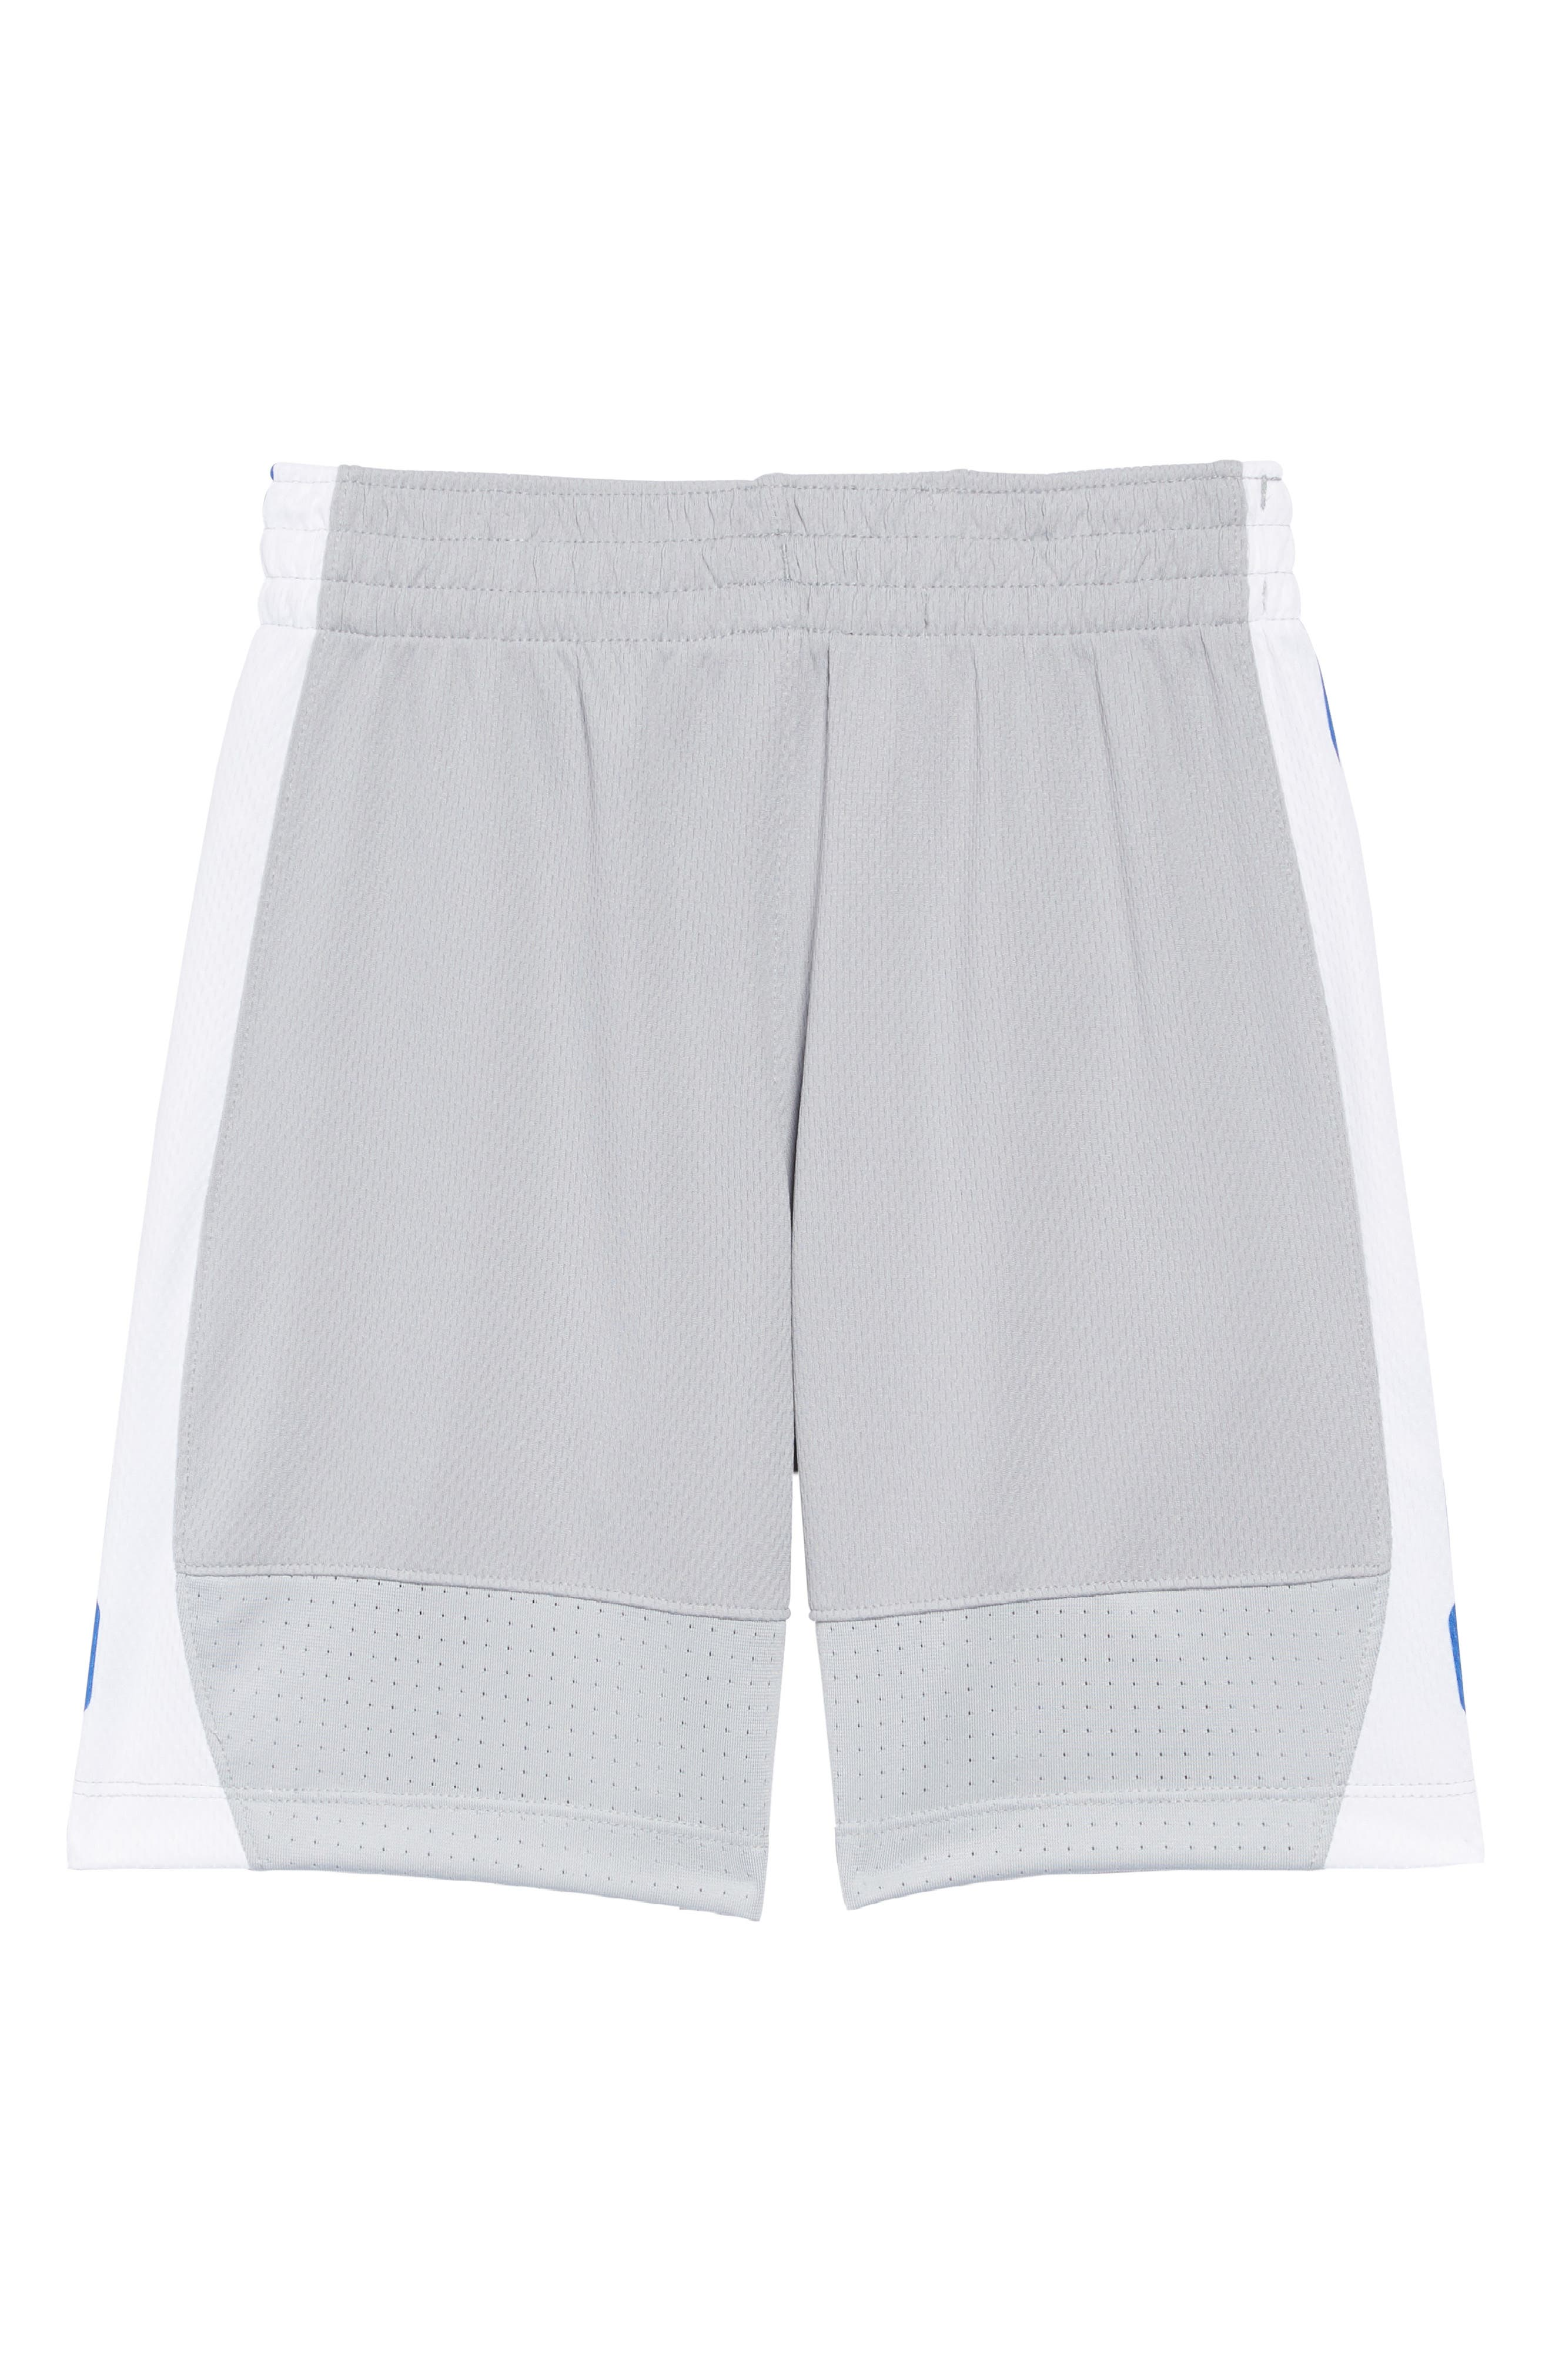 Dry Elite Basketball Shorts,                             Alternate thumbnail 61, color,